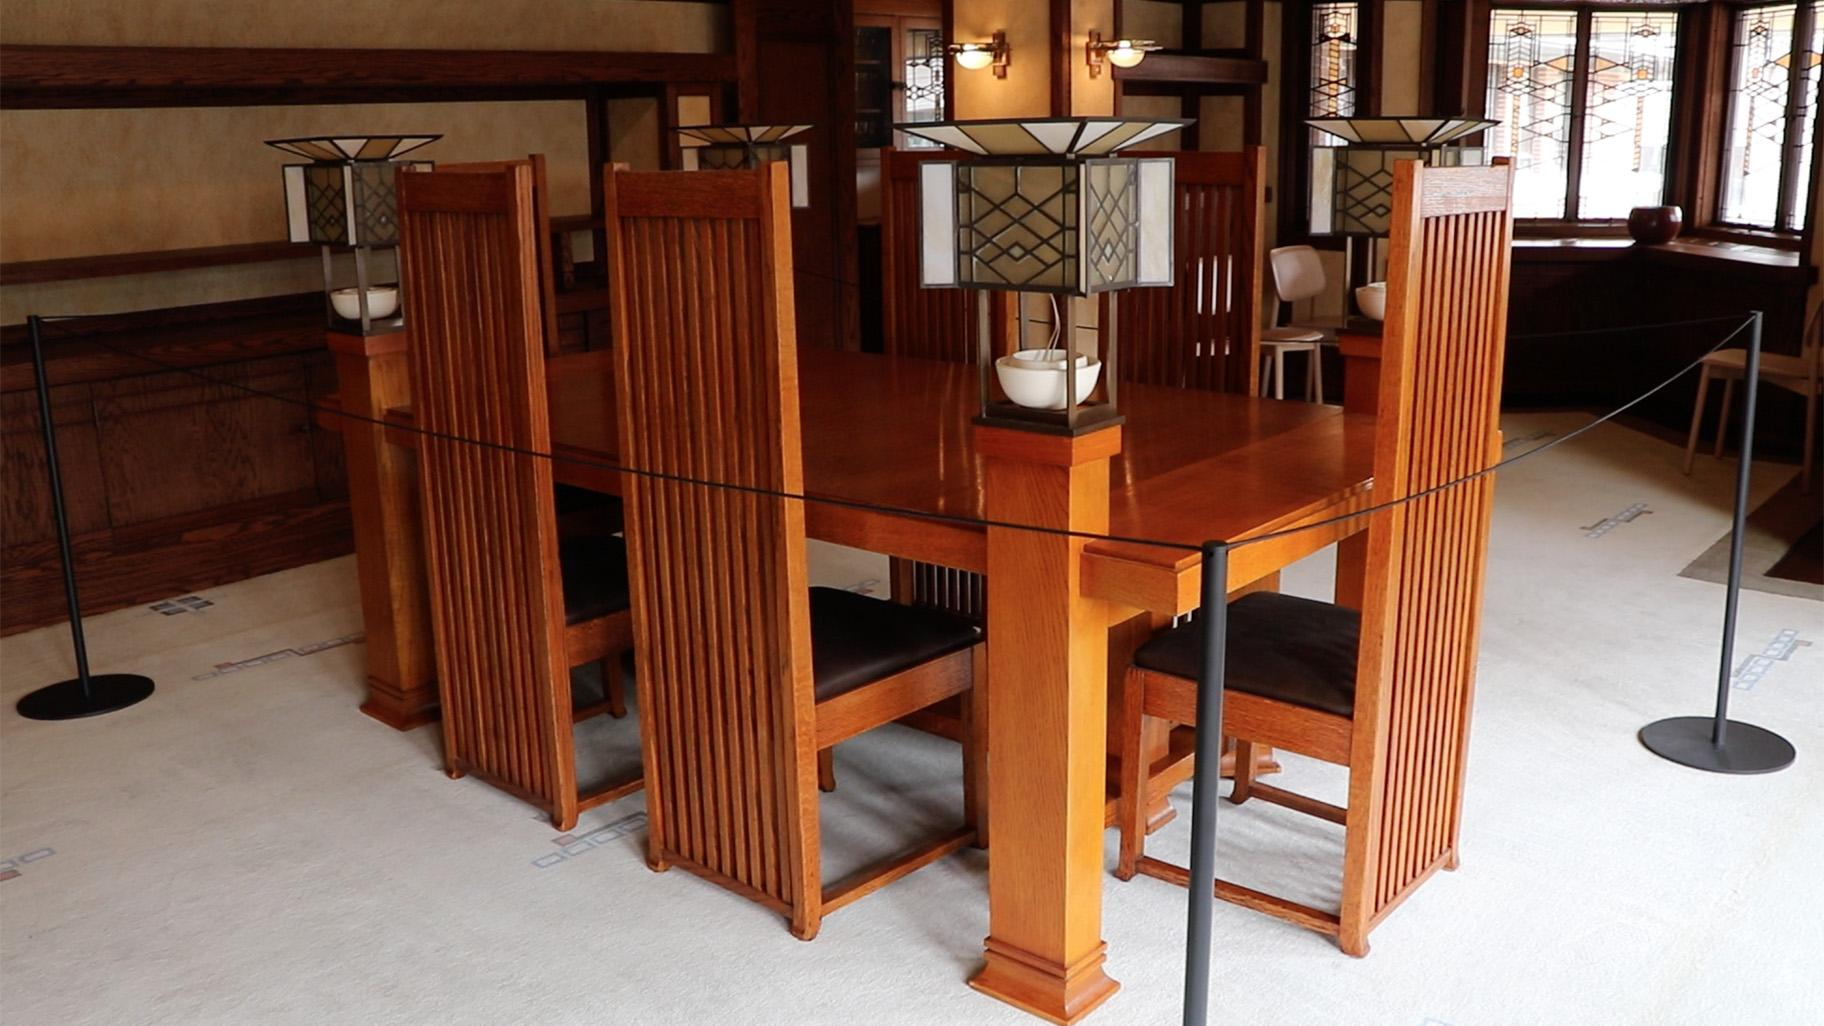 Frank lloyd wright s robie house reopens after massive - Frank lloyd wright style ...